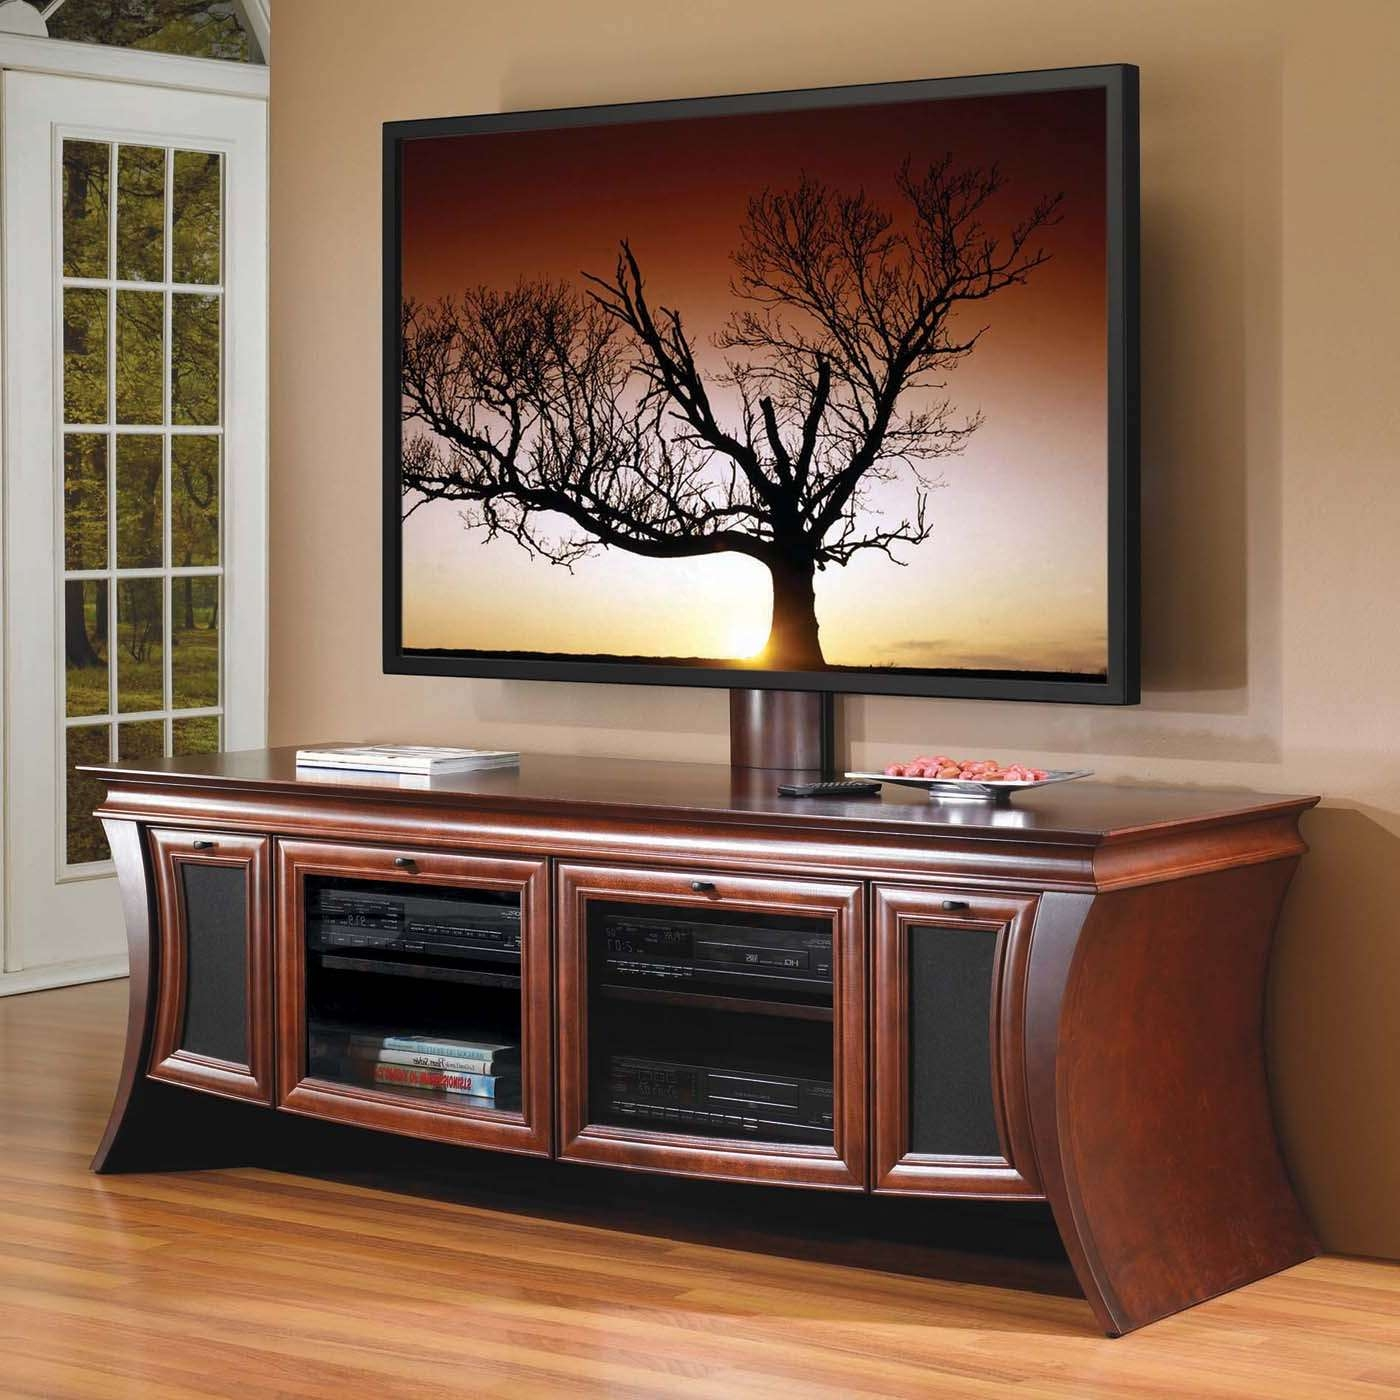 Luxurious Tv Stand With Teak Wood Materials Also Curves Side Intended For Wood Tv Stands With Glass Top (View 6 of 15)